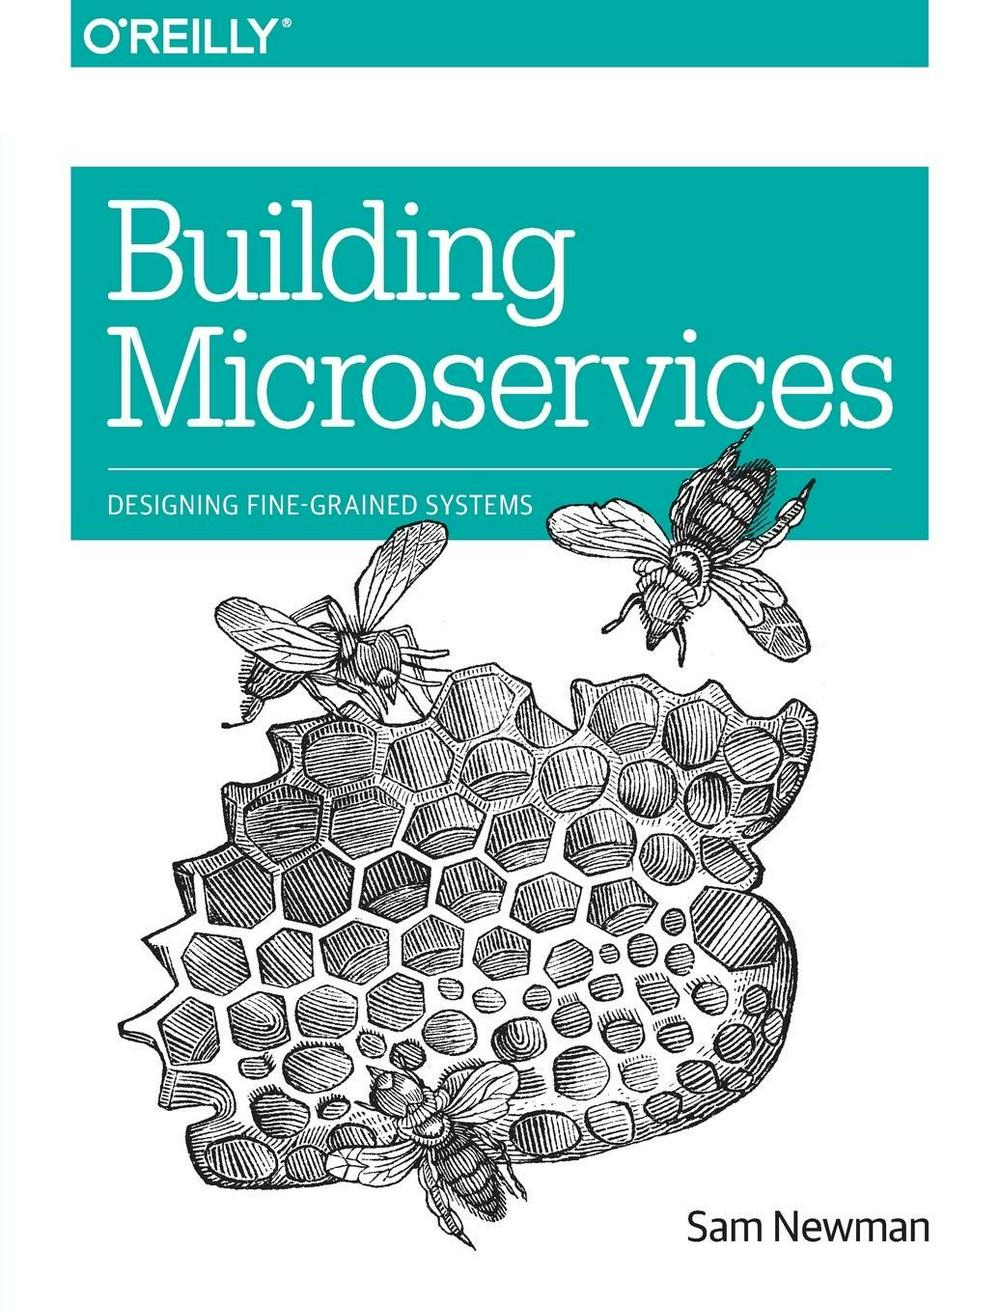 Building Microservices by Sam Newman, ISBN: 9781491950357